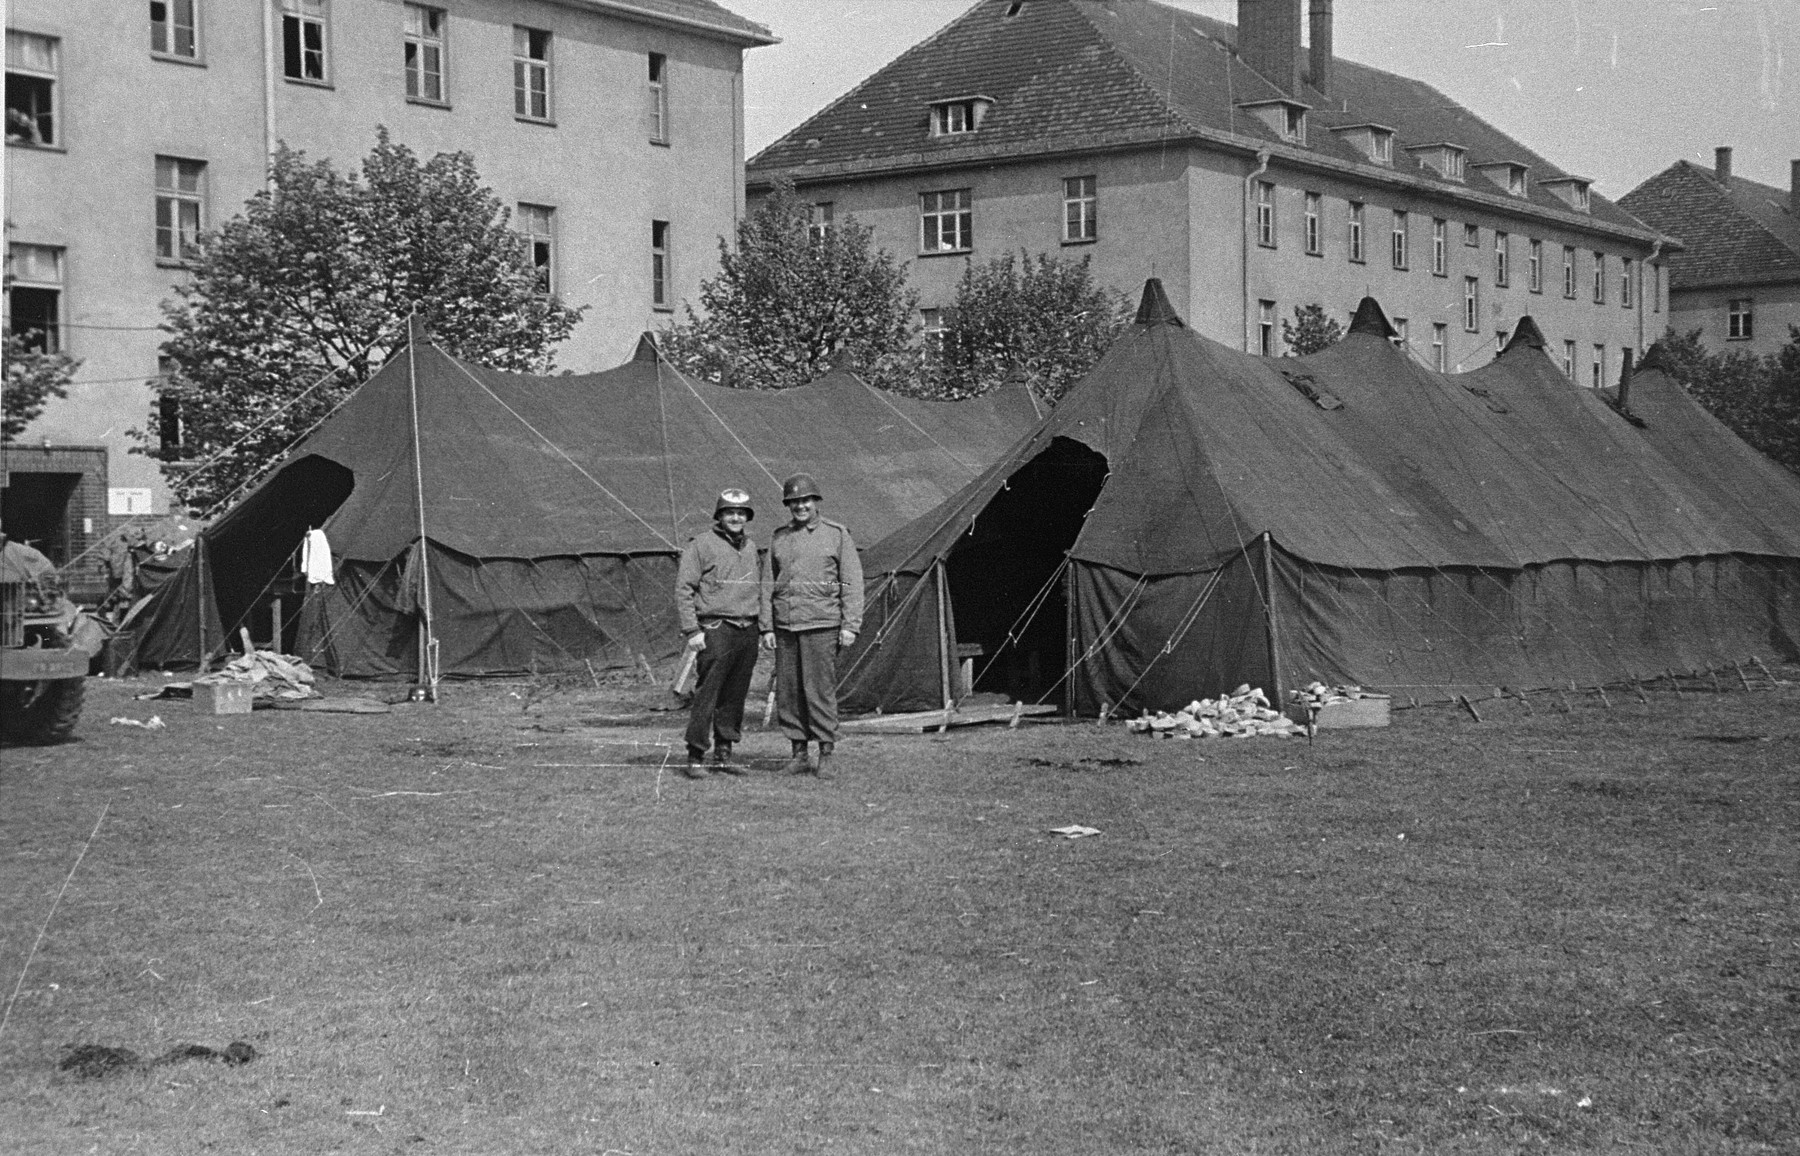 American medical personnel stand in front of two tents set up outside a school which has been converted into a hospital for concentration camp survivors from Langenstein-Zwieberge.